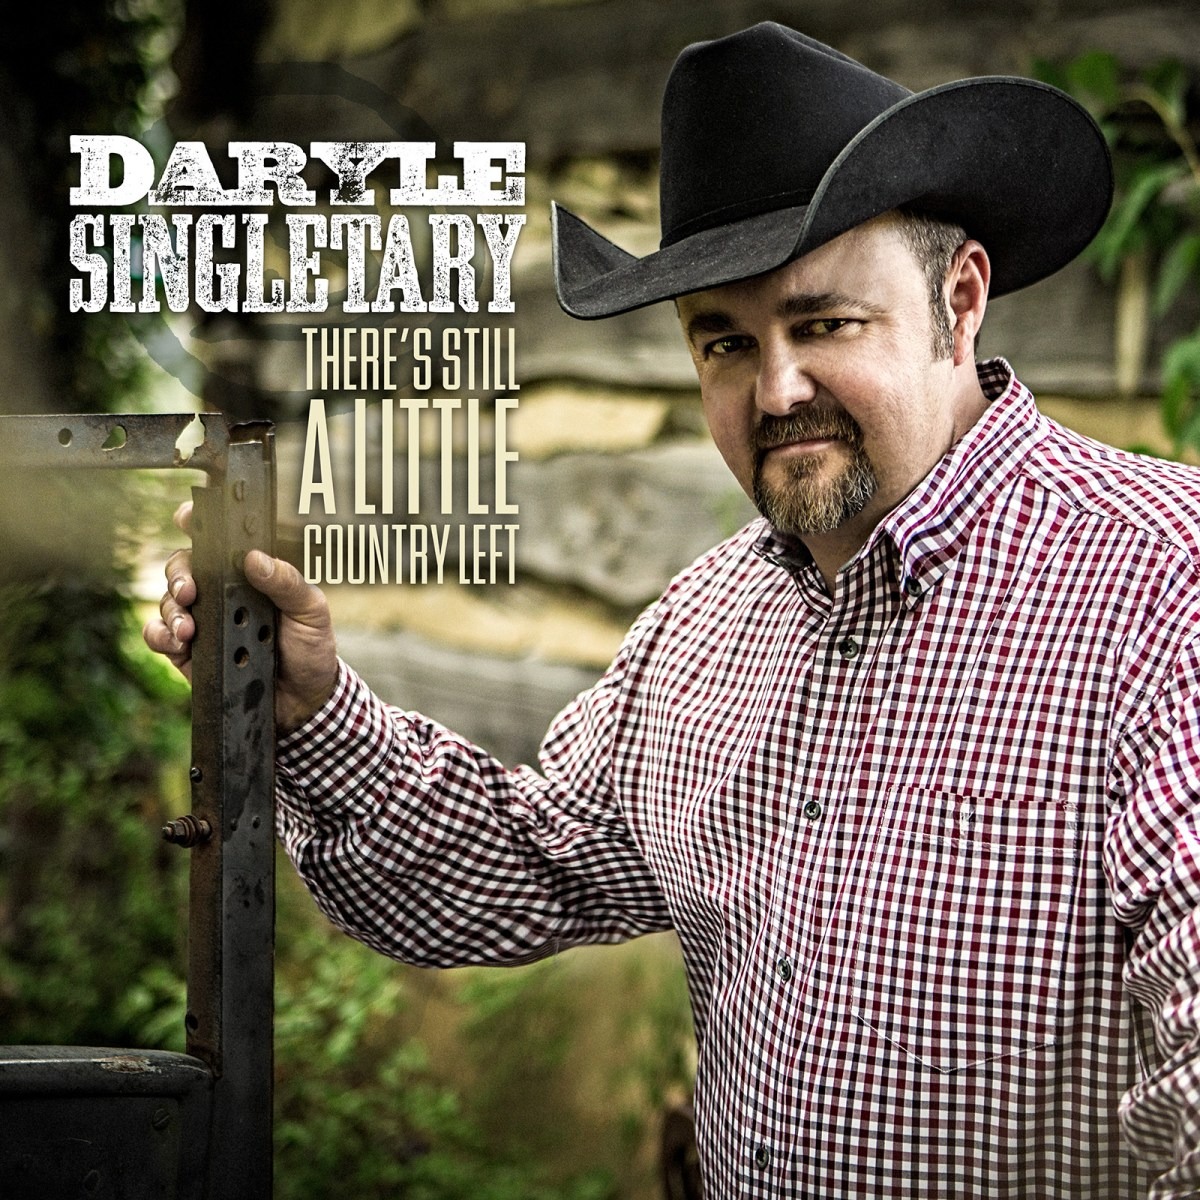 Album Review: Daryle Singletary - There's Still a Little Country Left